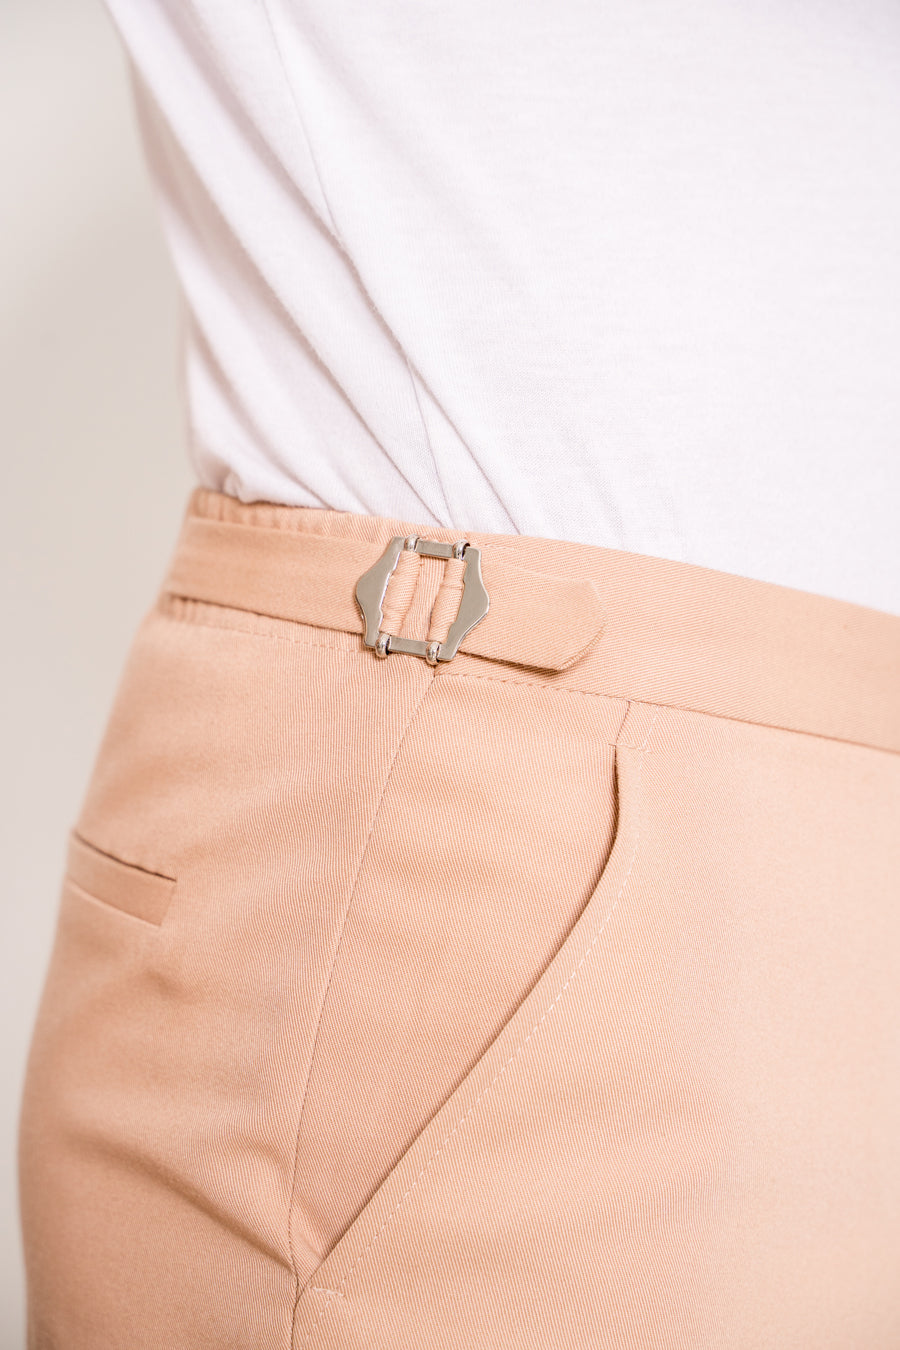 Stephen Stone Colour Skinny Fit Chinos - with side adjusters